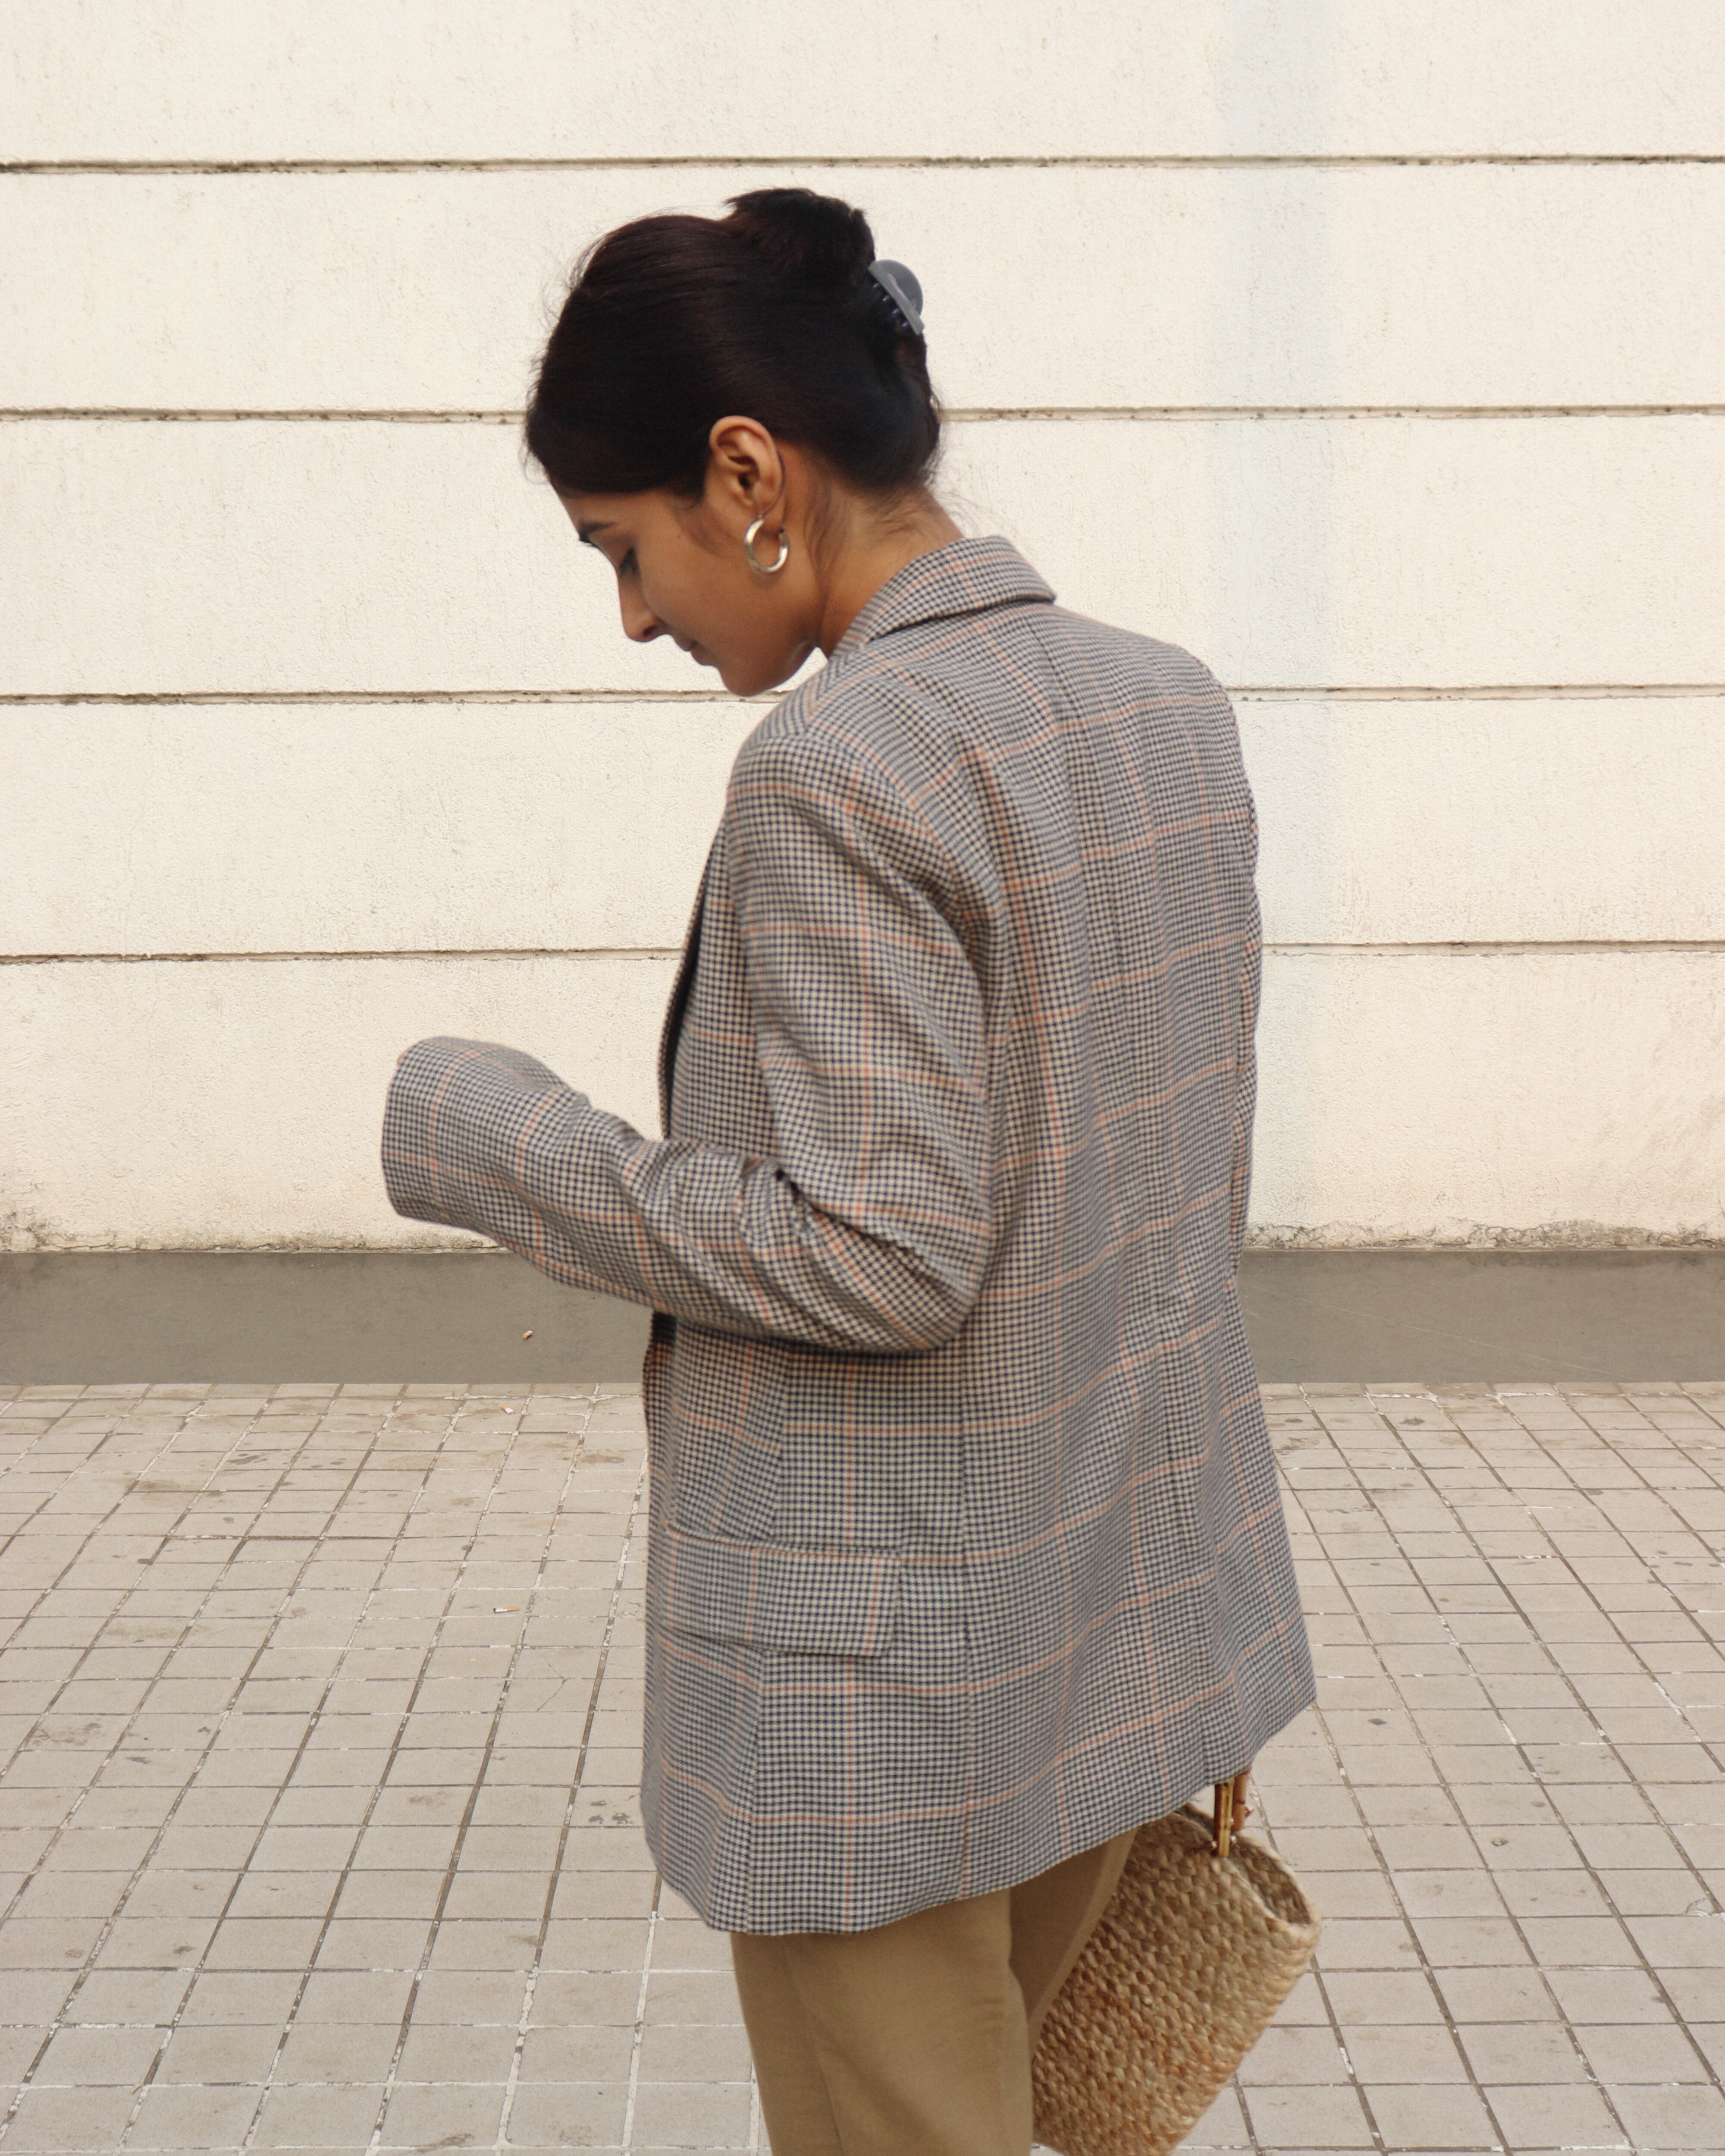 How to style plaid blazers - Prity Singh